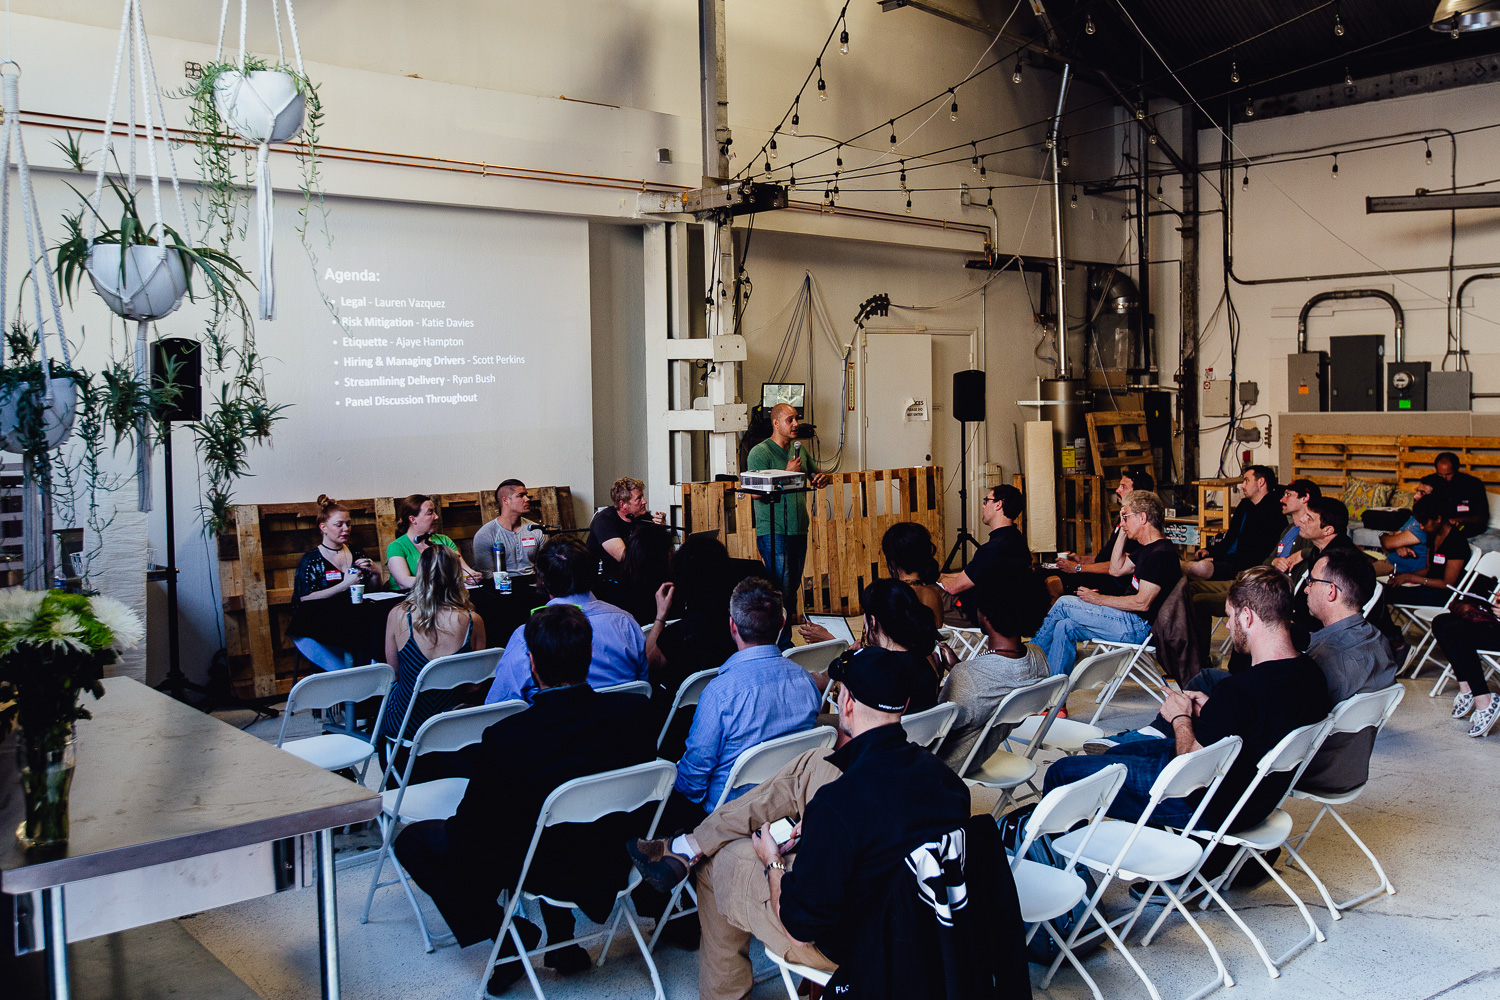 Community meeting in the community space of their San Fransisco based office.